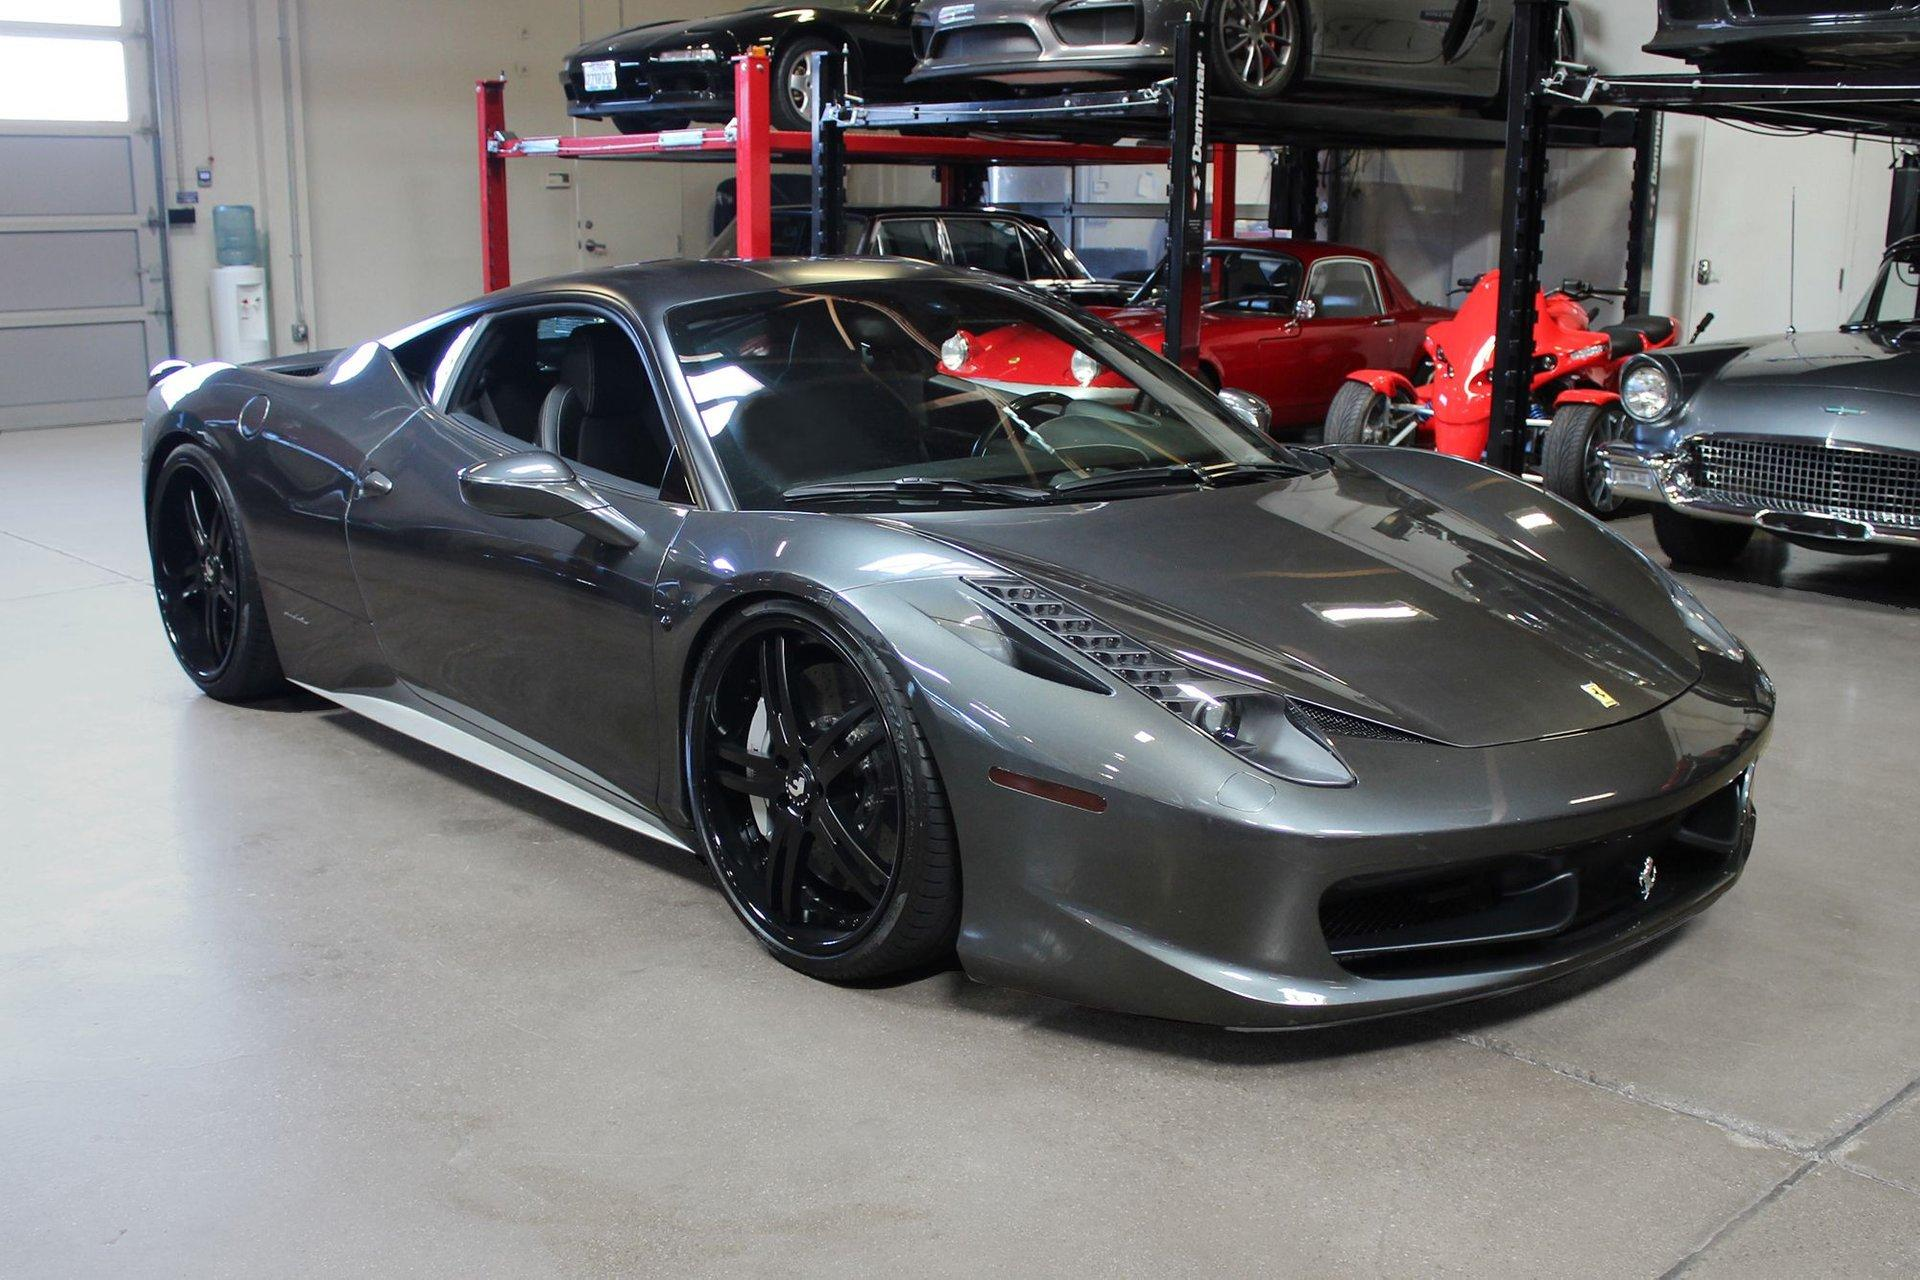 Used 2010 Ferrari 458 Italia For Sale Special Pricing San Francisco Sports Cars Stock P19083